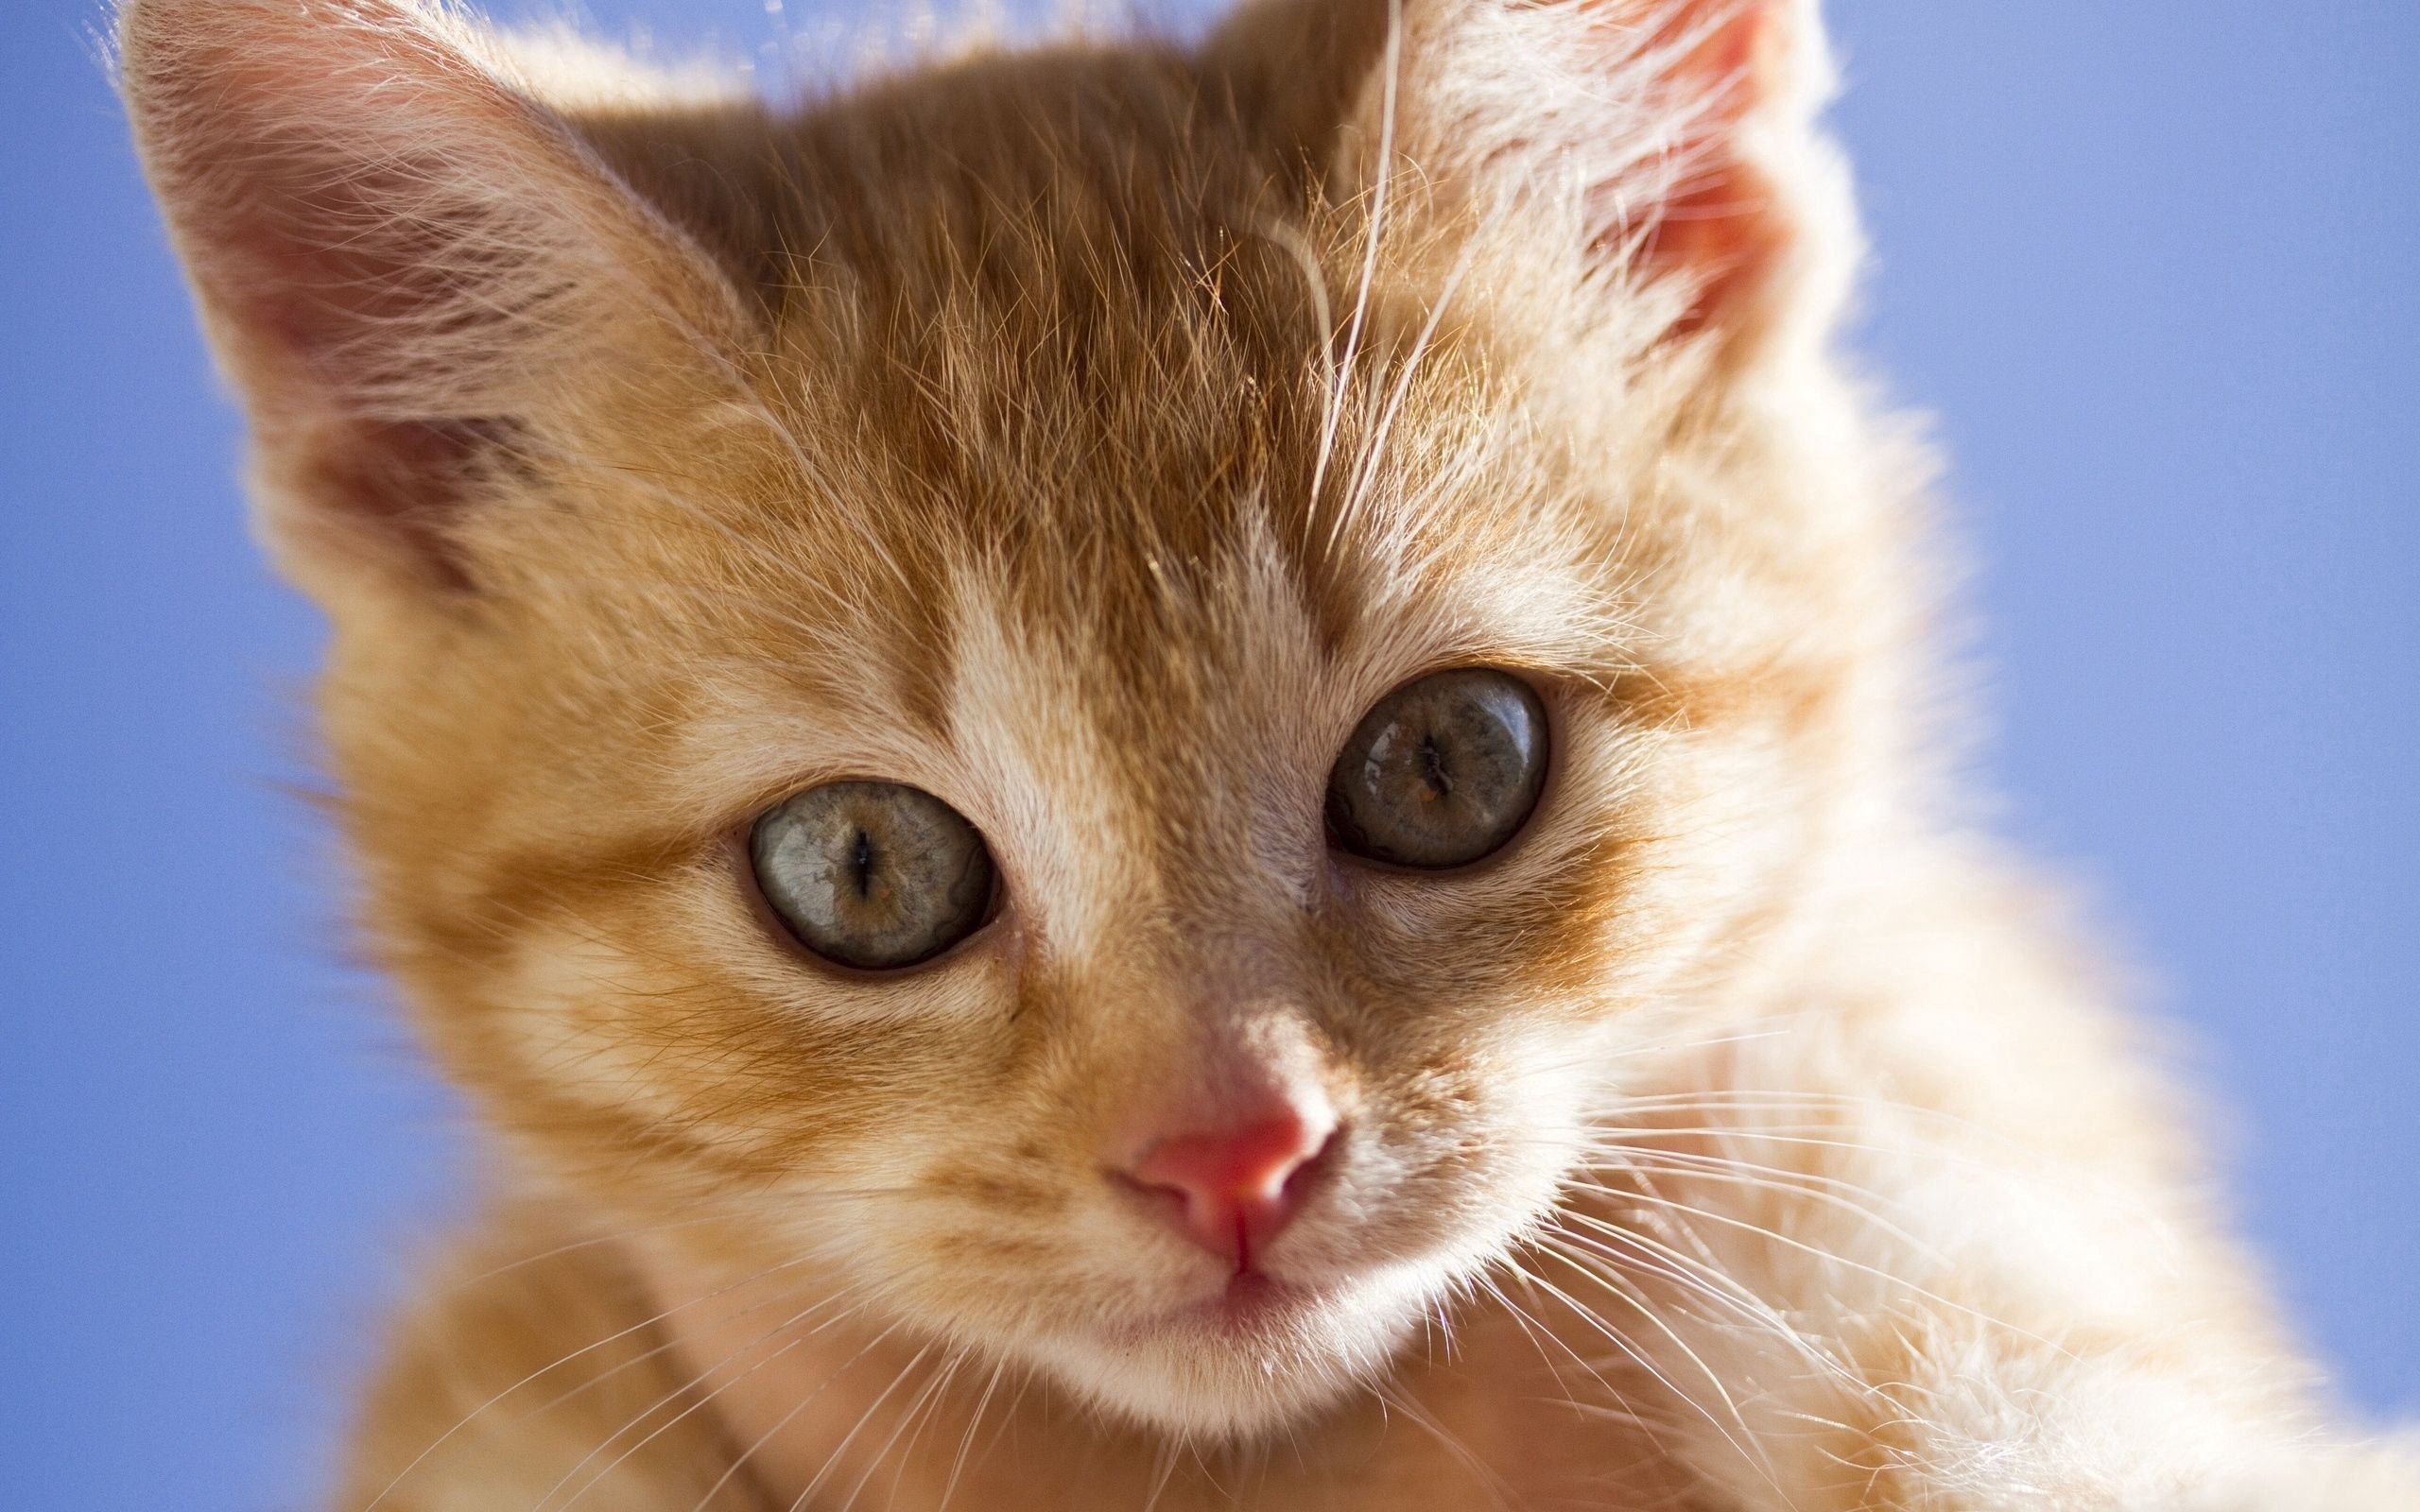 70503 download wallpaper Animals, Kitty, Kitten, Muzzle, Sight, Opinion, Redhead, Fright screensavers and pictures for free